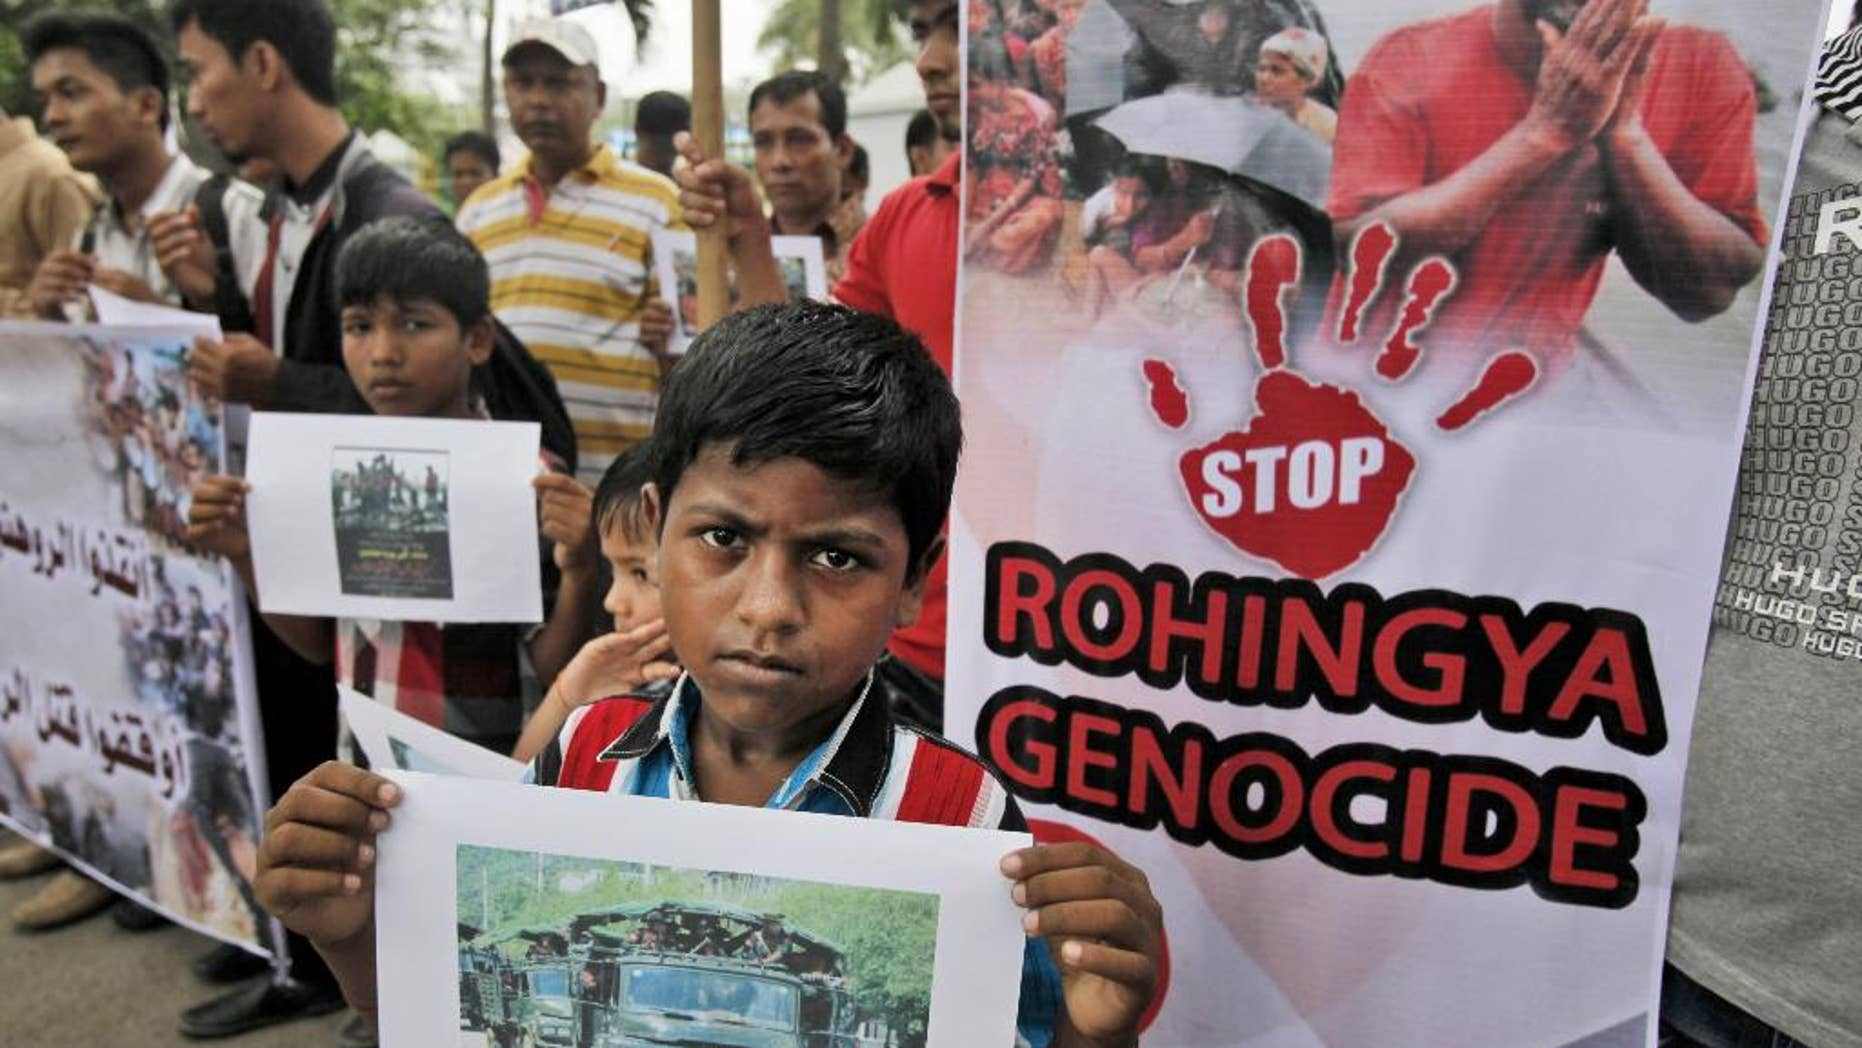 Ethnic Rohingya migrants hold banners during a rally in Medan, North Sumatra, Indonesia, Tuesday, May 12, 2015. Hundreds of migrants abandoned at sea by smugglers in Southeast Asia have reached land and relative safety in the past two days. But an estimated 6,000 Bangladeshis and Rohingya Muslims from Myanmar remain trapped in crowded, wooden boats, migrant officials and activists said. With food and clean water running low, some could be in grave danger. (AP Photo/Binsar Bakkara)